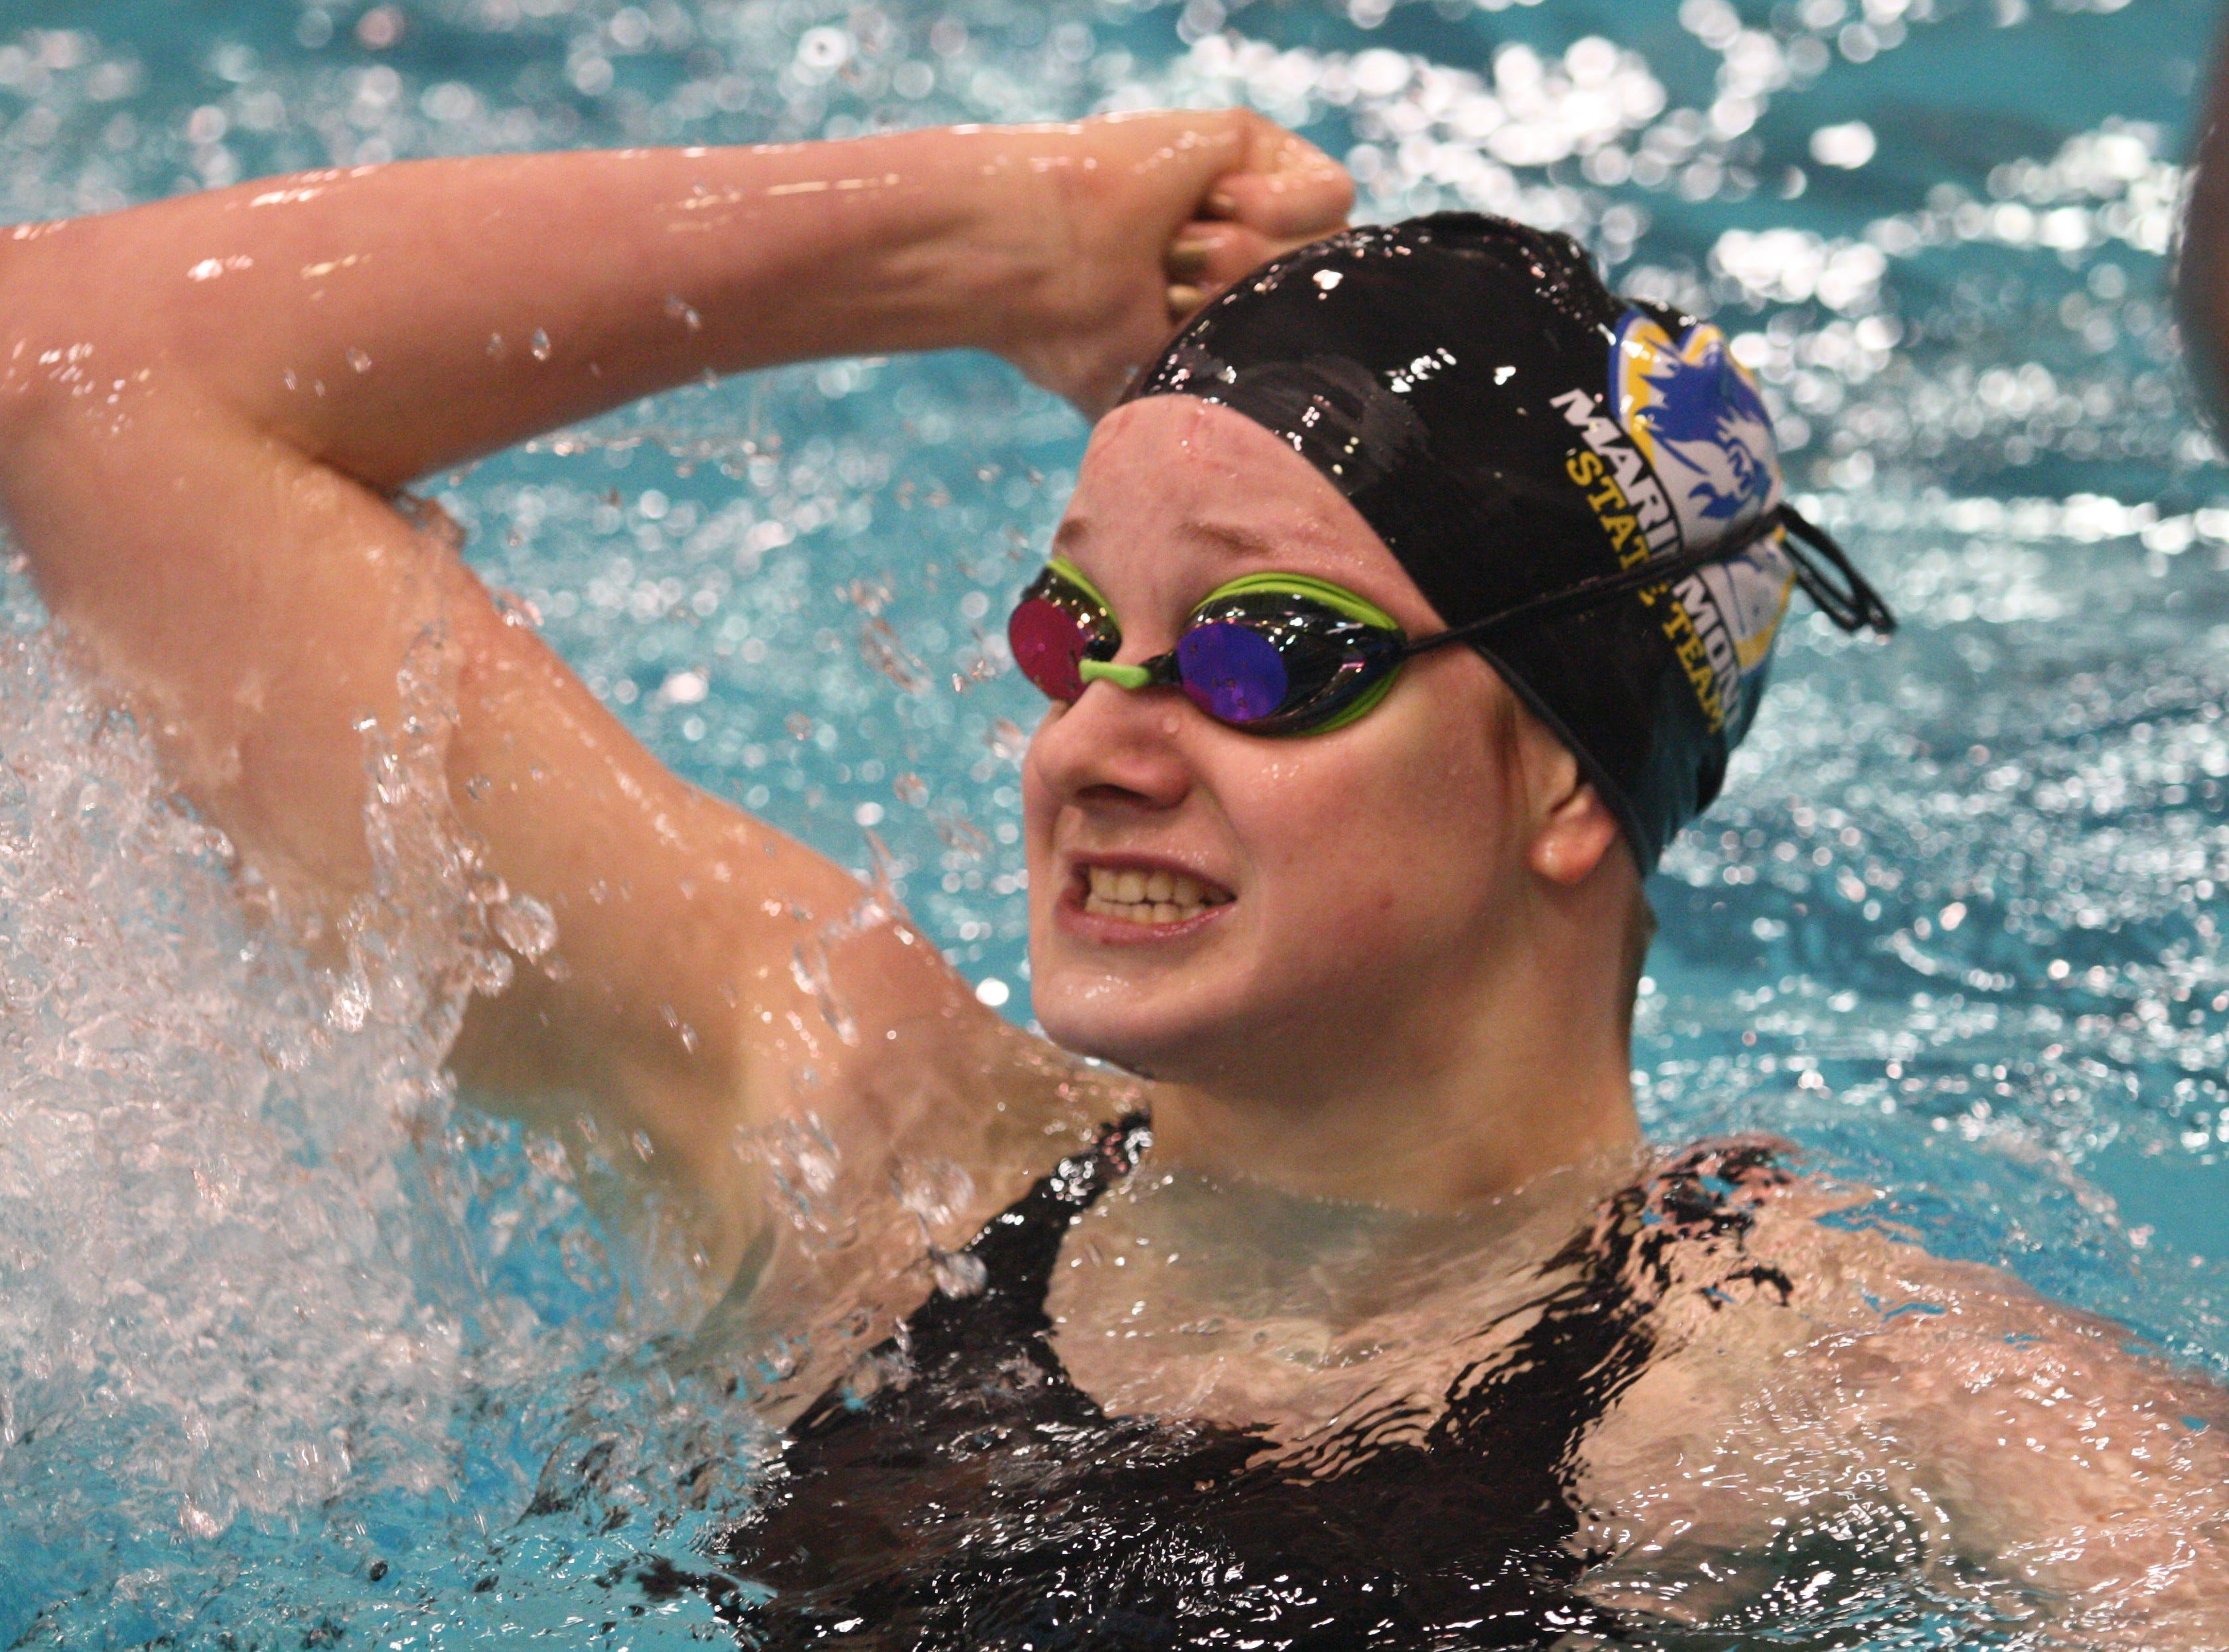 Mariemont junior Kate Overbey celebrates a fourth-place finish in the 200 individual medley at the Division II state championship on Friday, Feb. 23, 2018, at C.T. Branin Natatorium in Canton, Ohio.